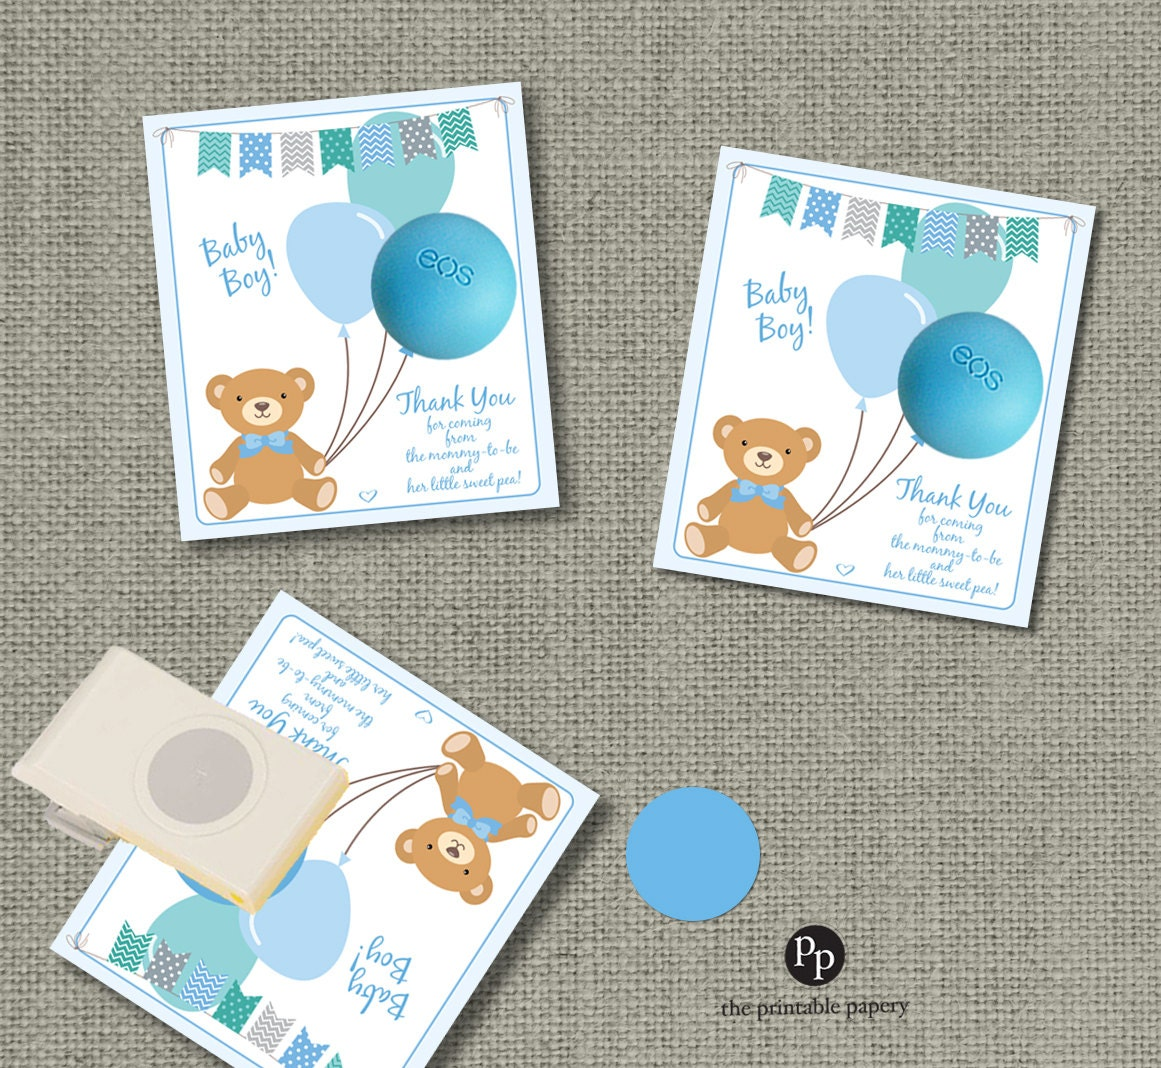 This is a photo of Playful Baby Gift Tag